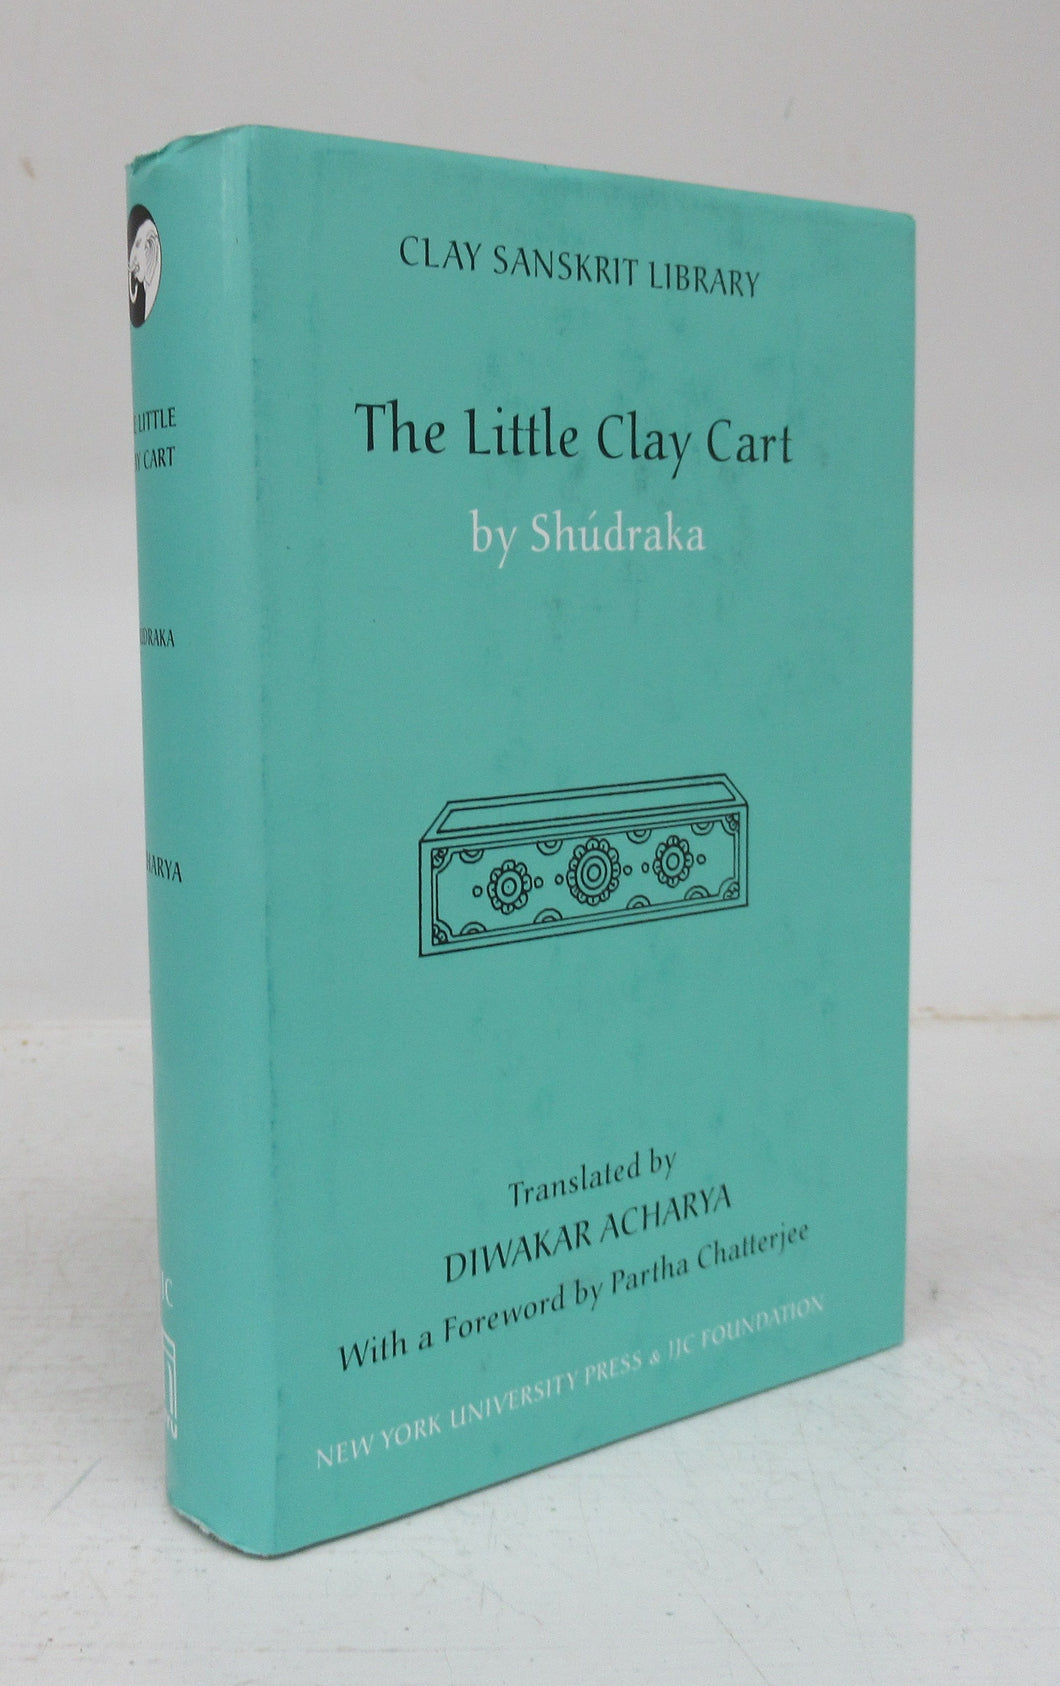 The Little Clay Cart